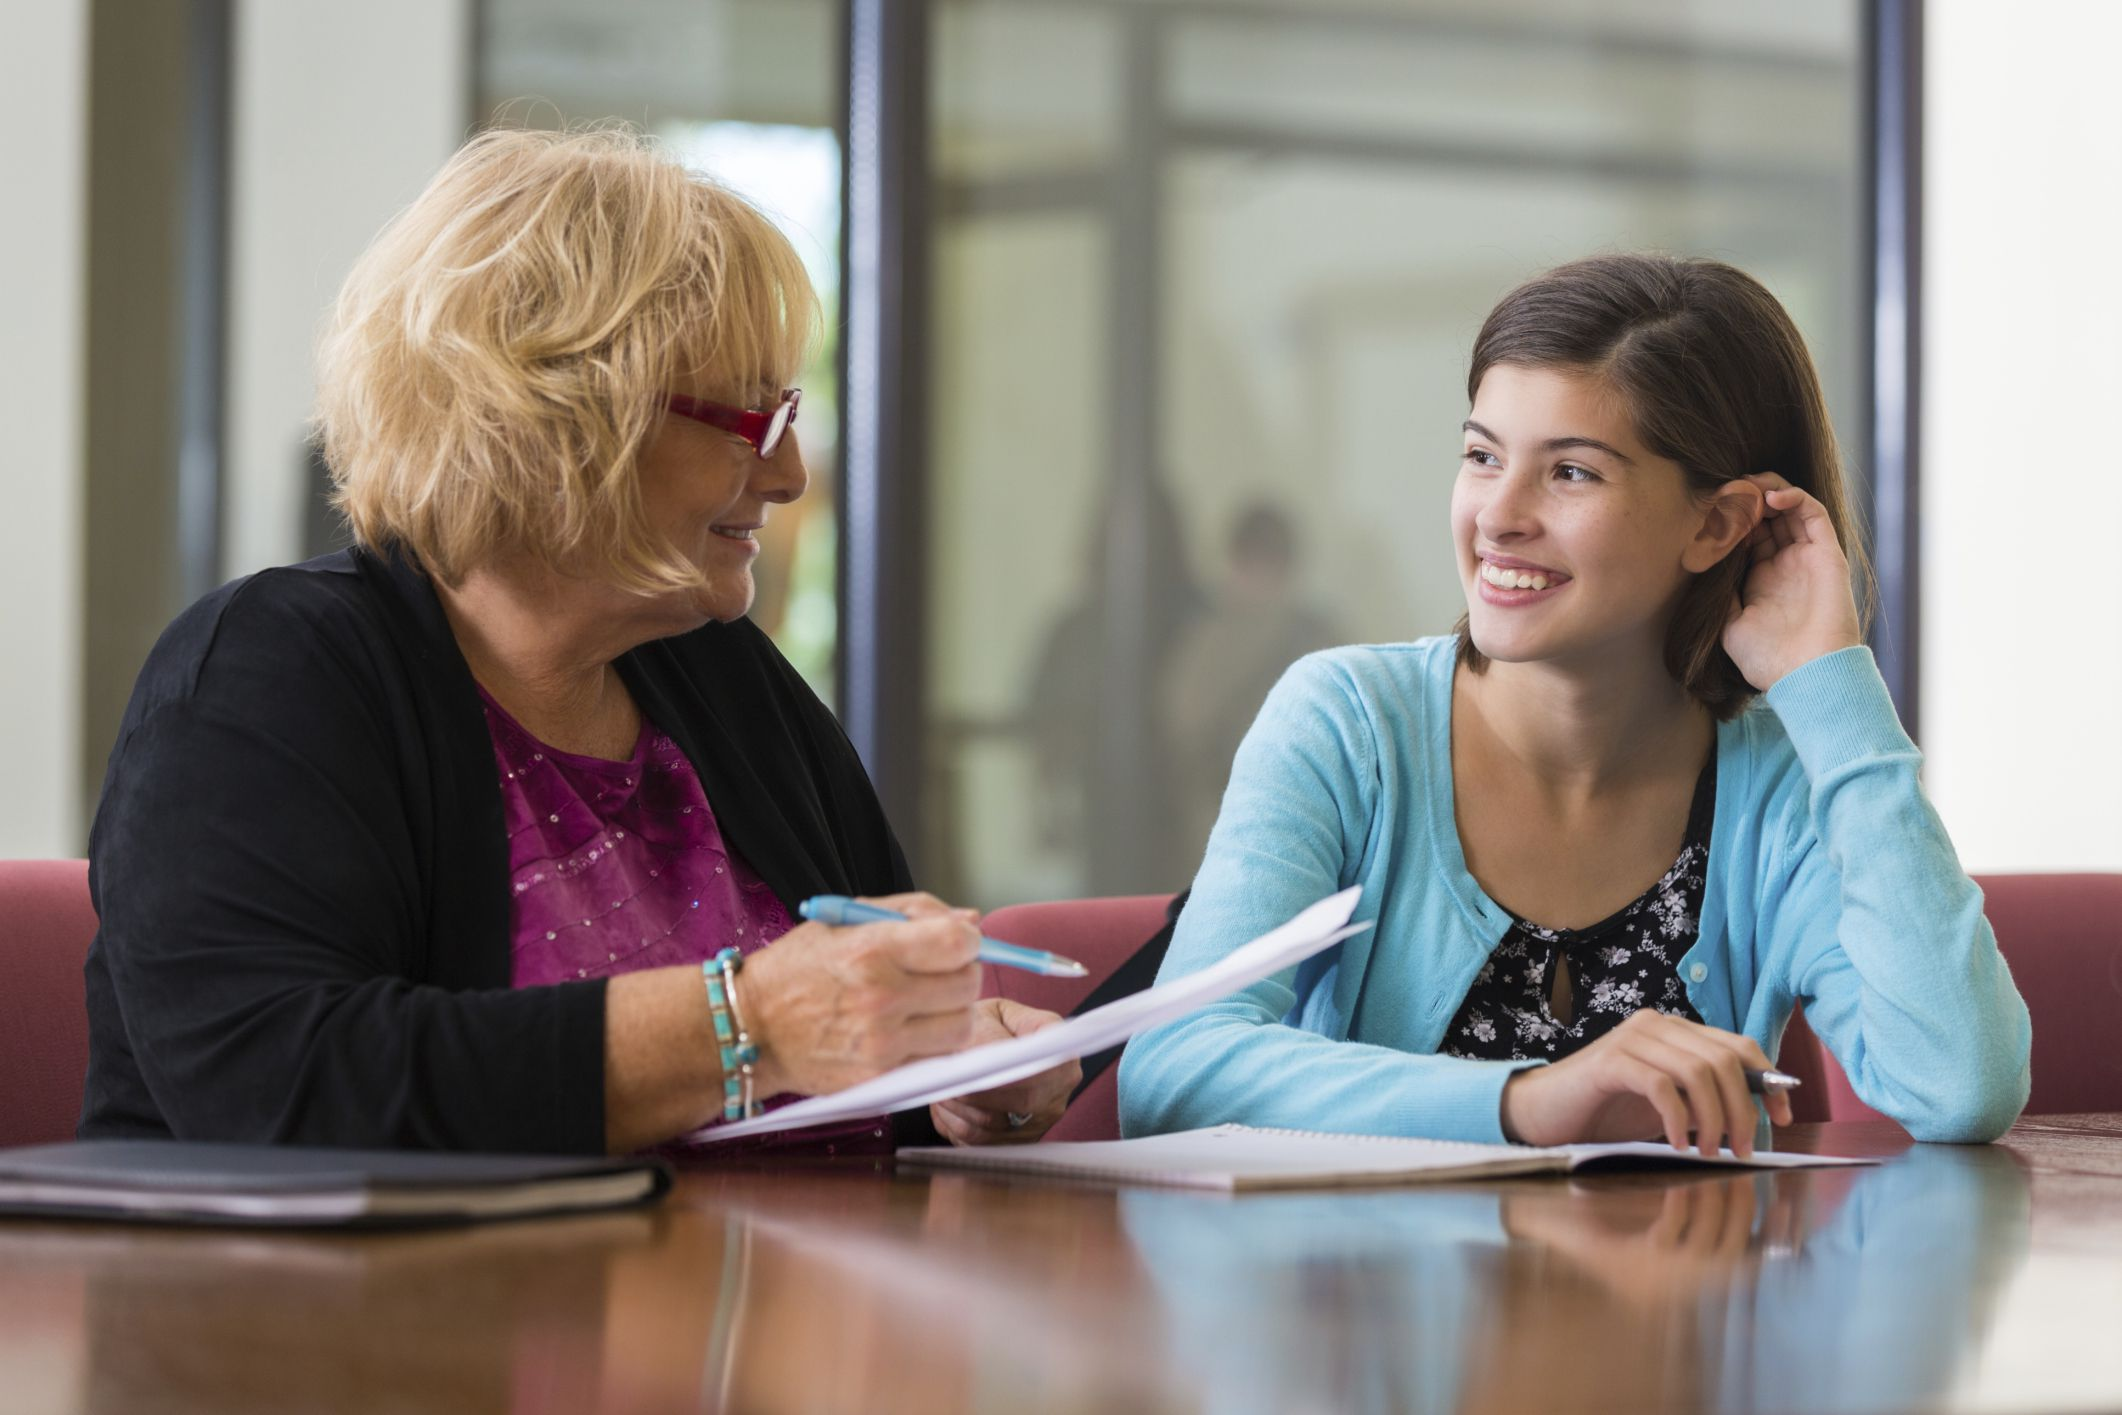 job search tips and advice for teens high school student and counselor